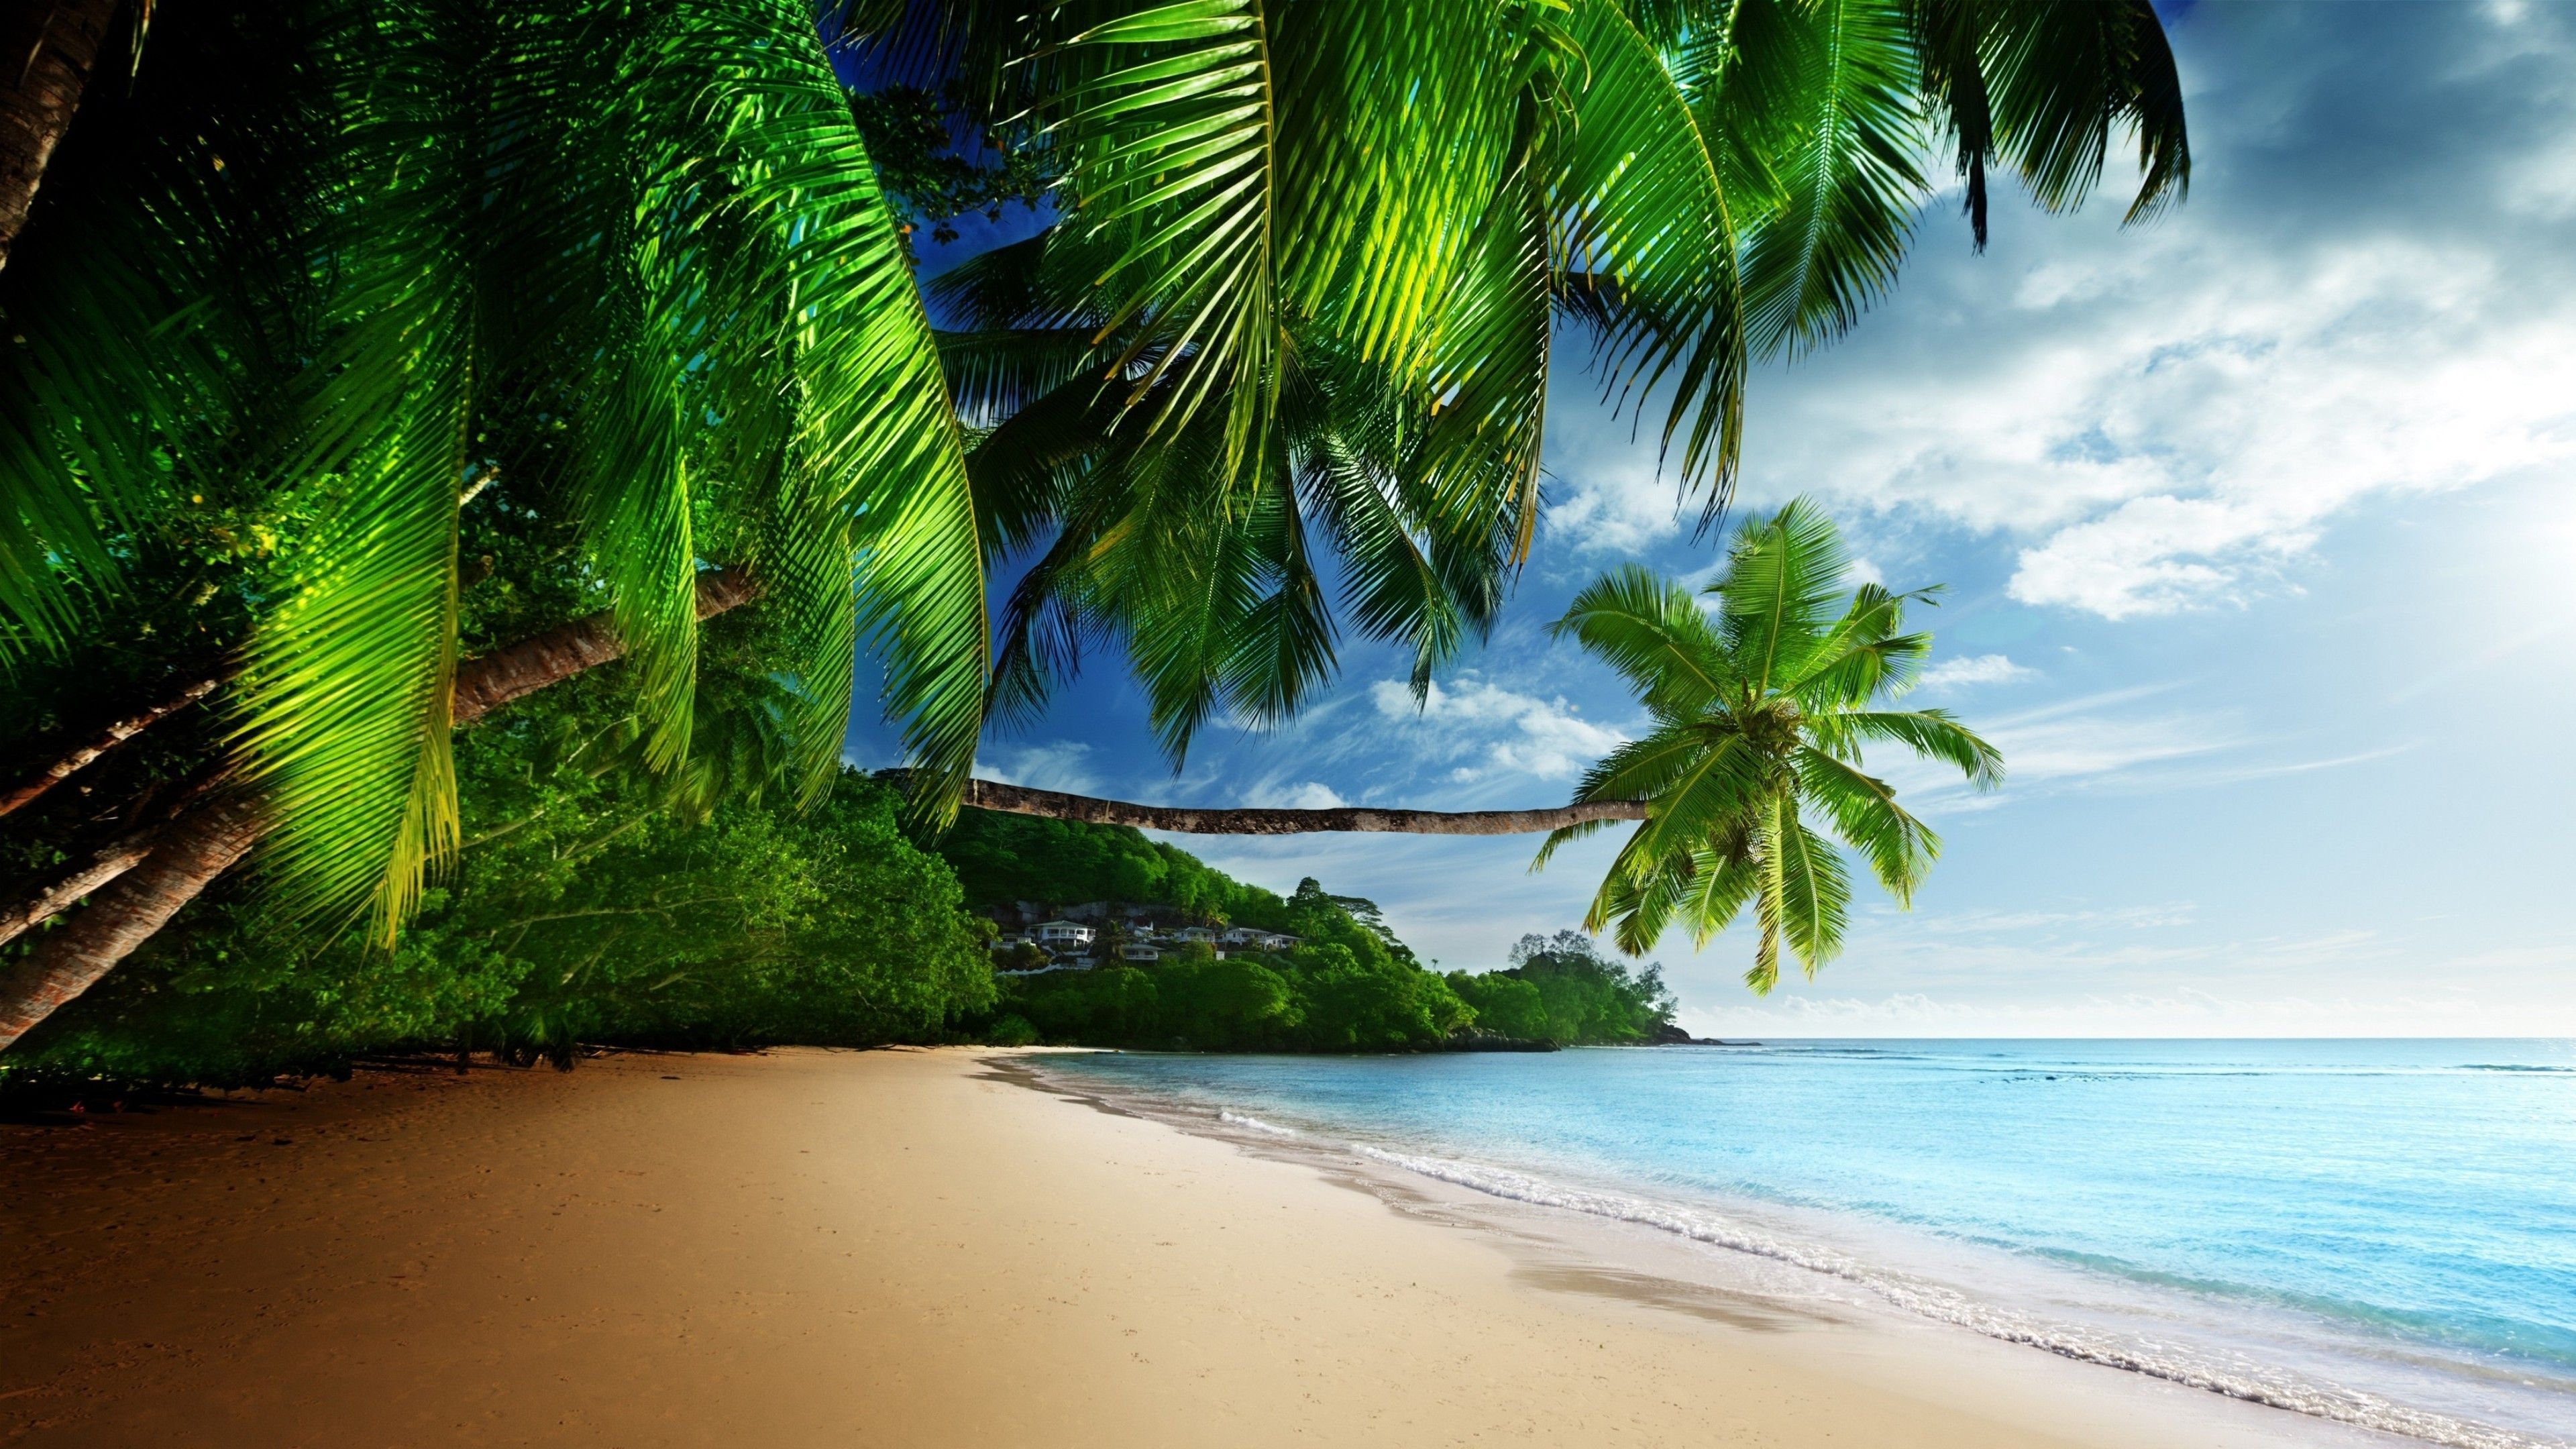 64K Ultra HD Beach Wallpapers - Top Free 64K Ultra HD Beach